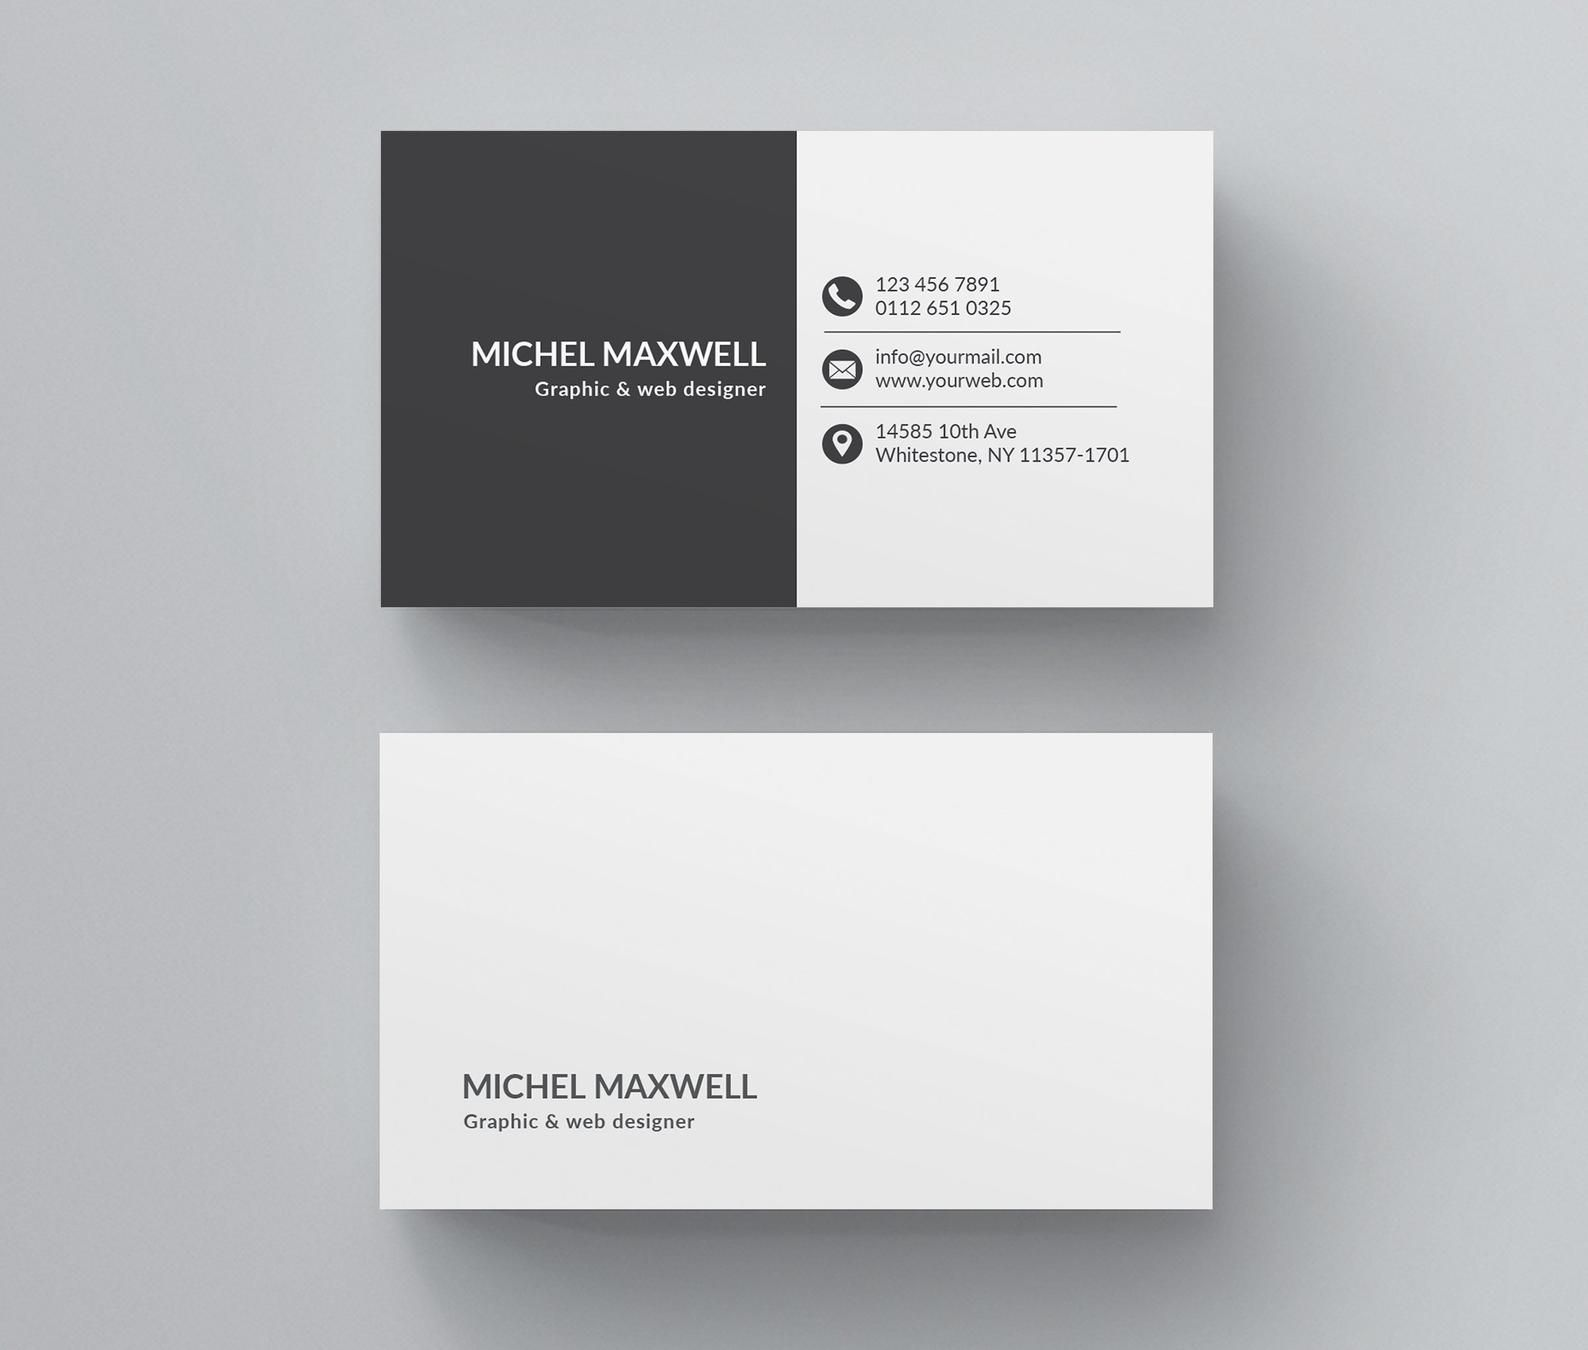 Business Card Word Business Card Template Business Card Etsy In 2021 Business Card Wording Free Business Card Templates Business Card Template